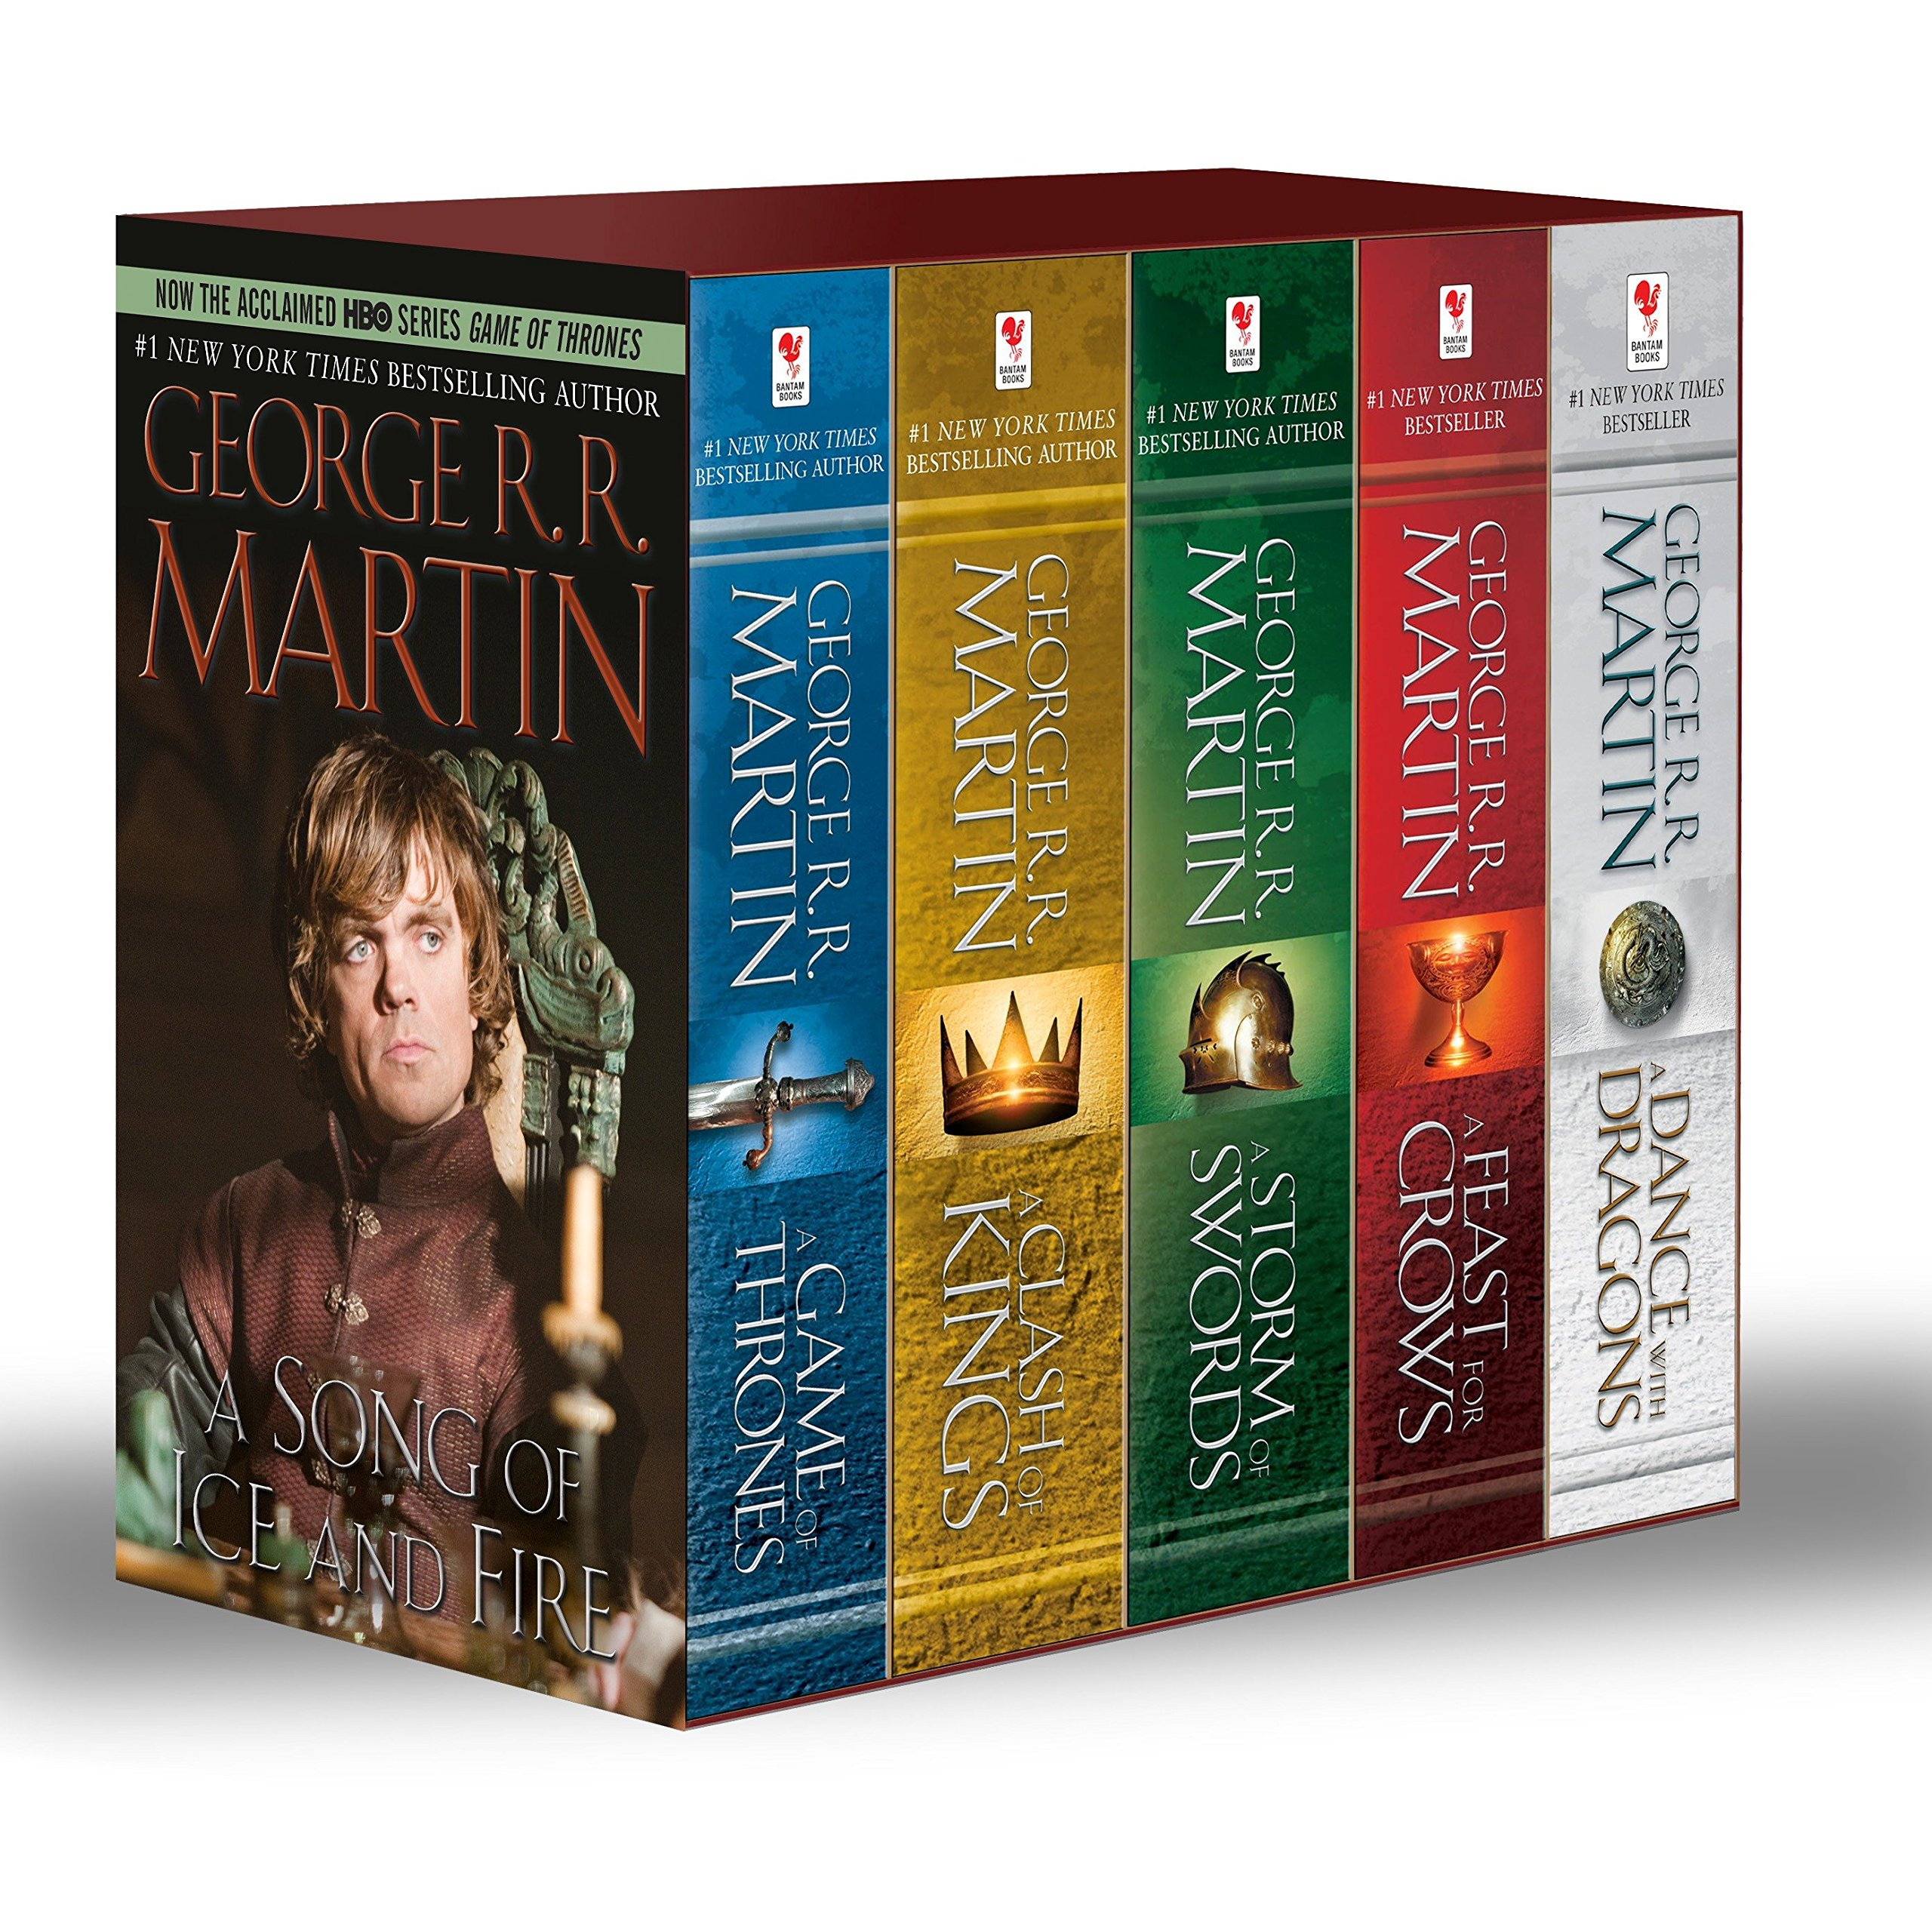 A Game of Thrones A Clash of Kings A Storm of Swords A Feast of Crows A Dance with Dragons George R R Martin Amazon Books